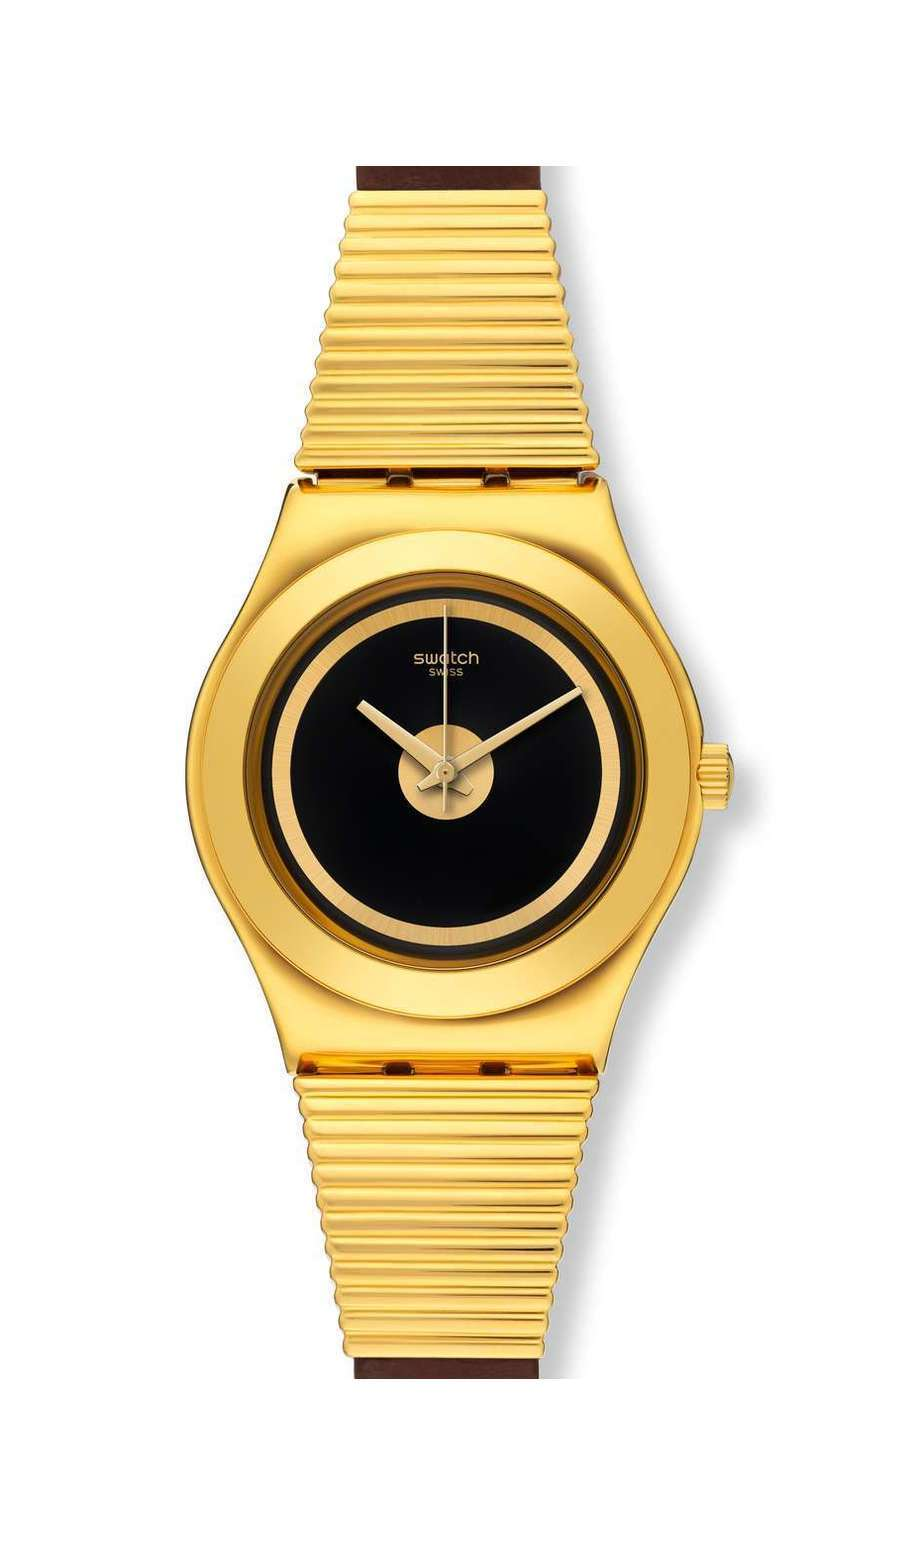 Swatch - HIGH NECK - 1